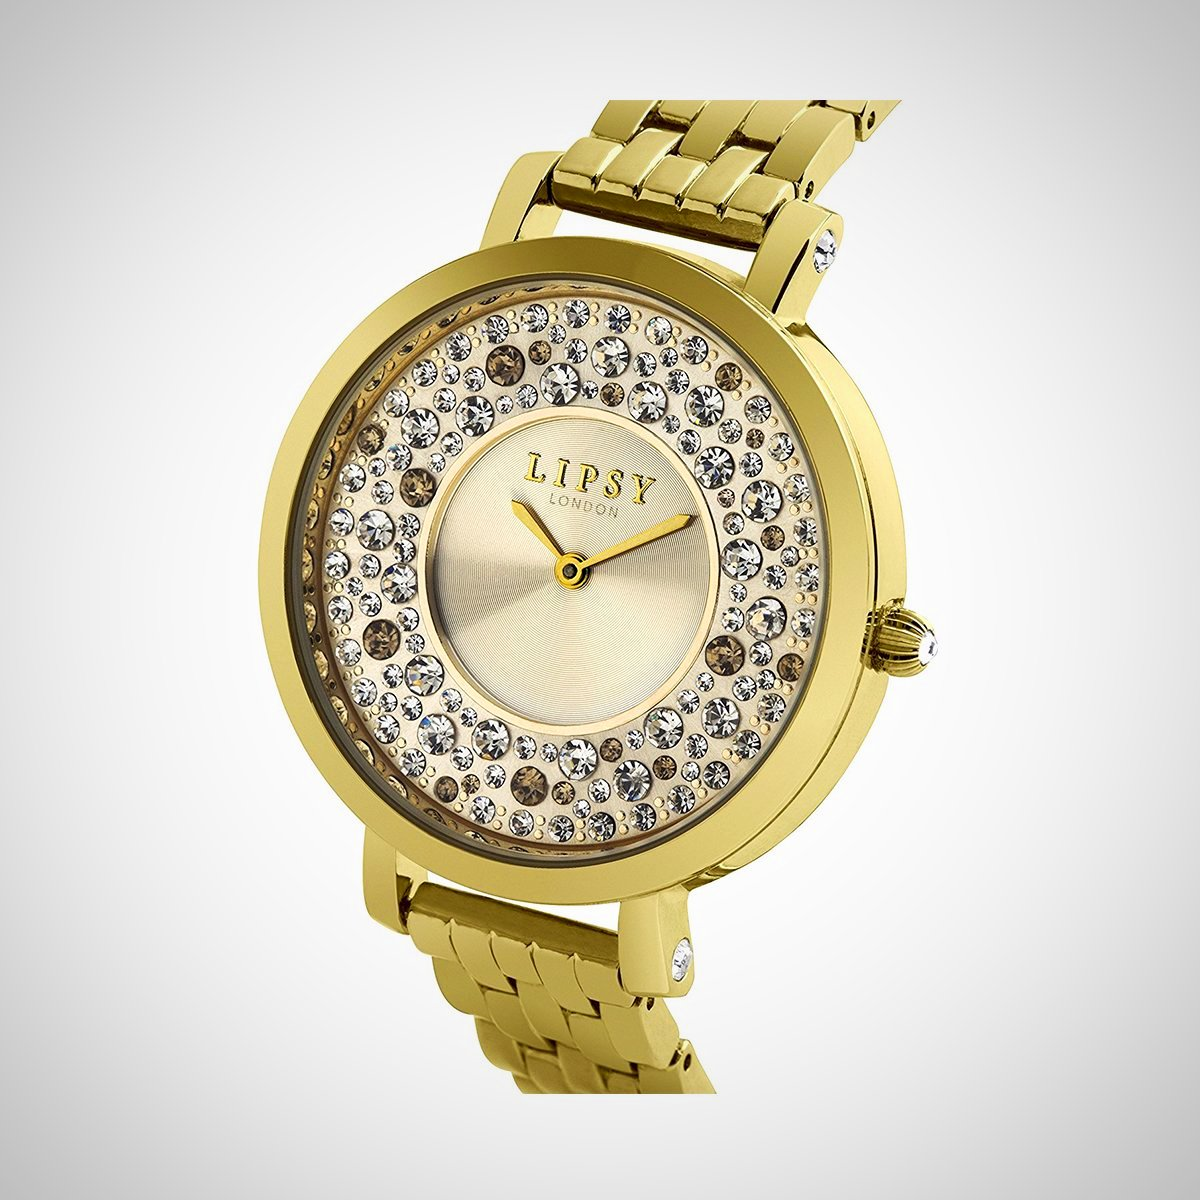 Lipsy LP397 Ladies PVD Gold Plated Stainless Steel Watch